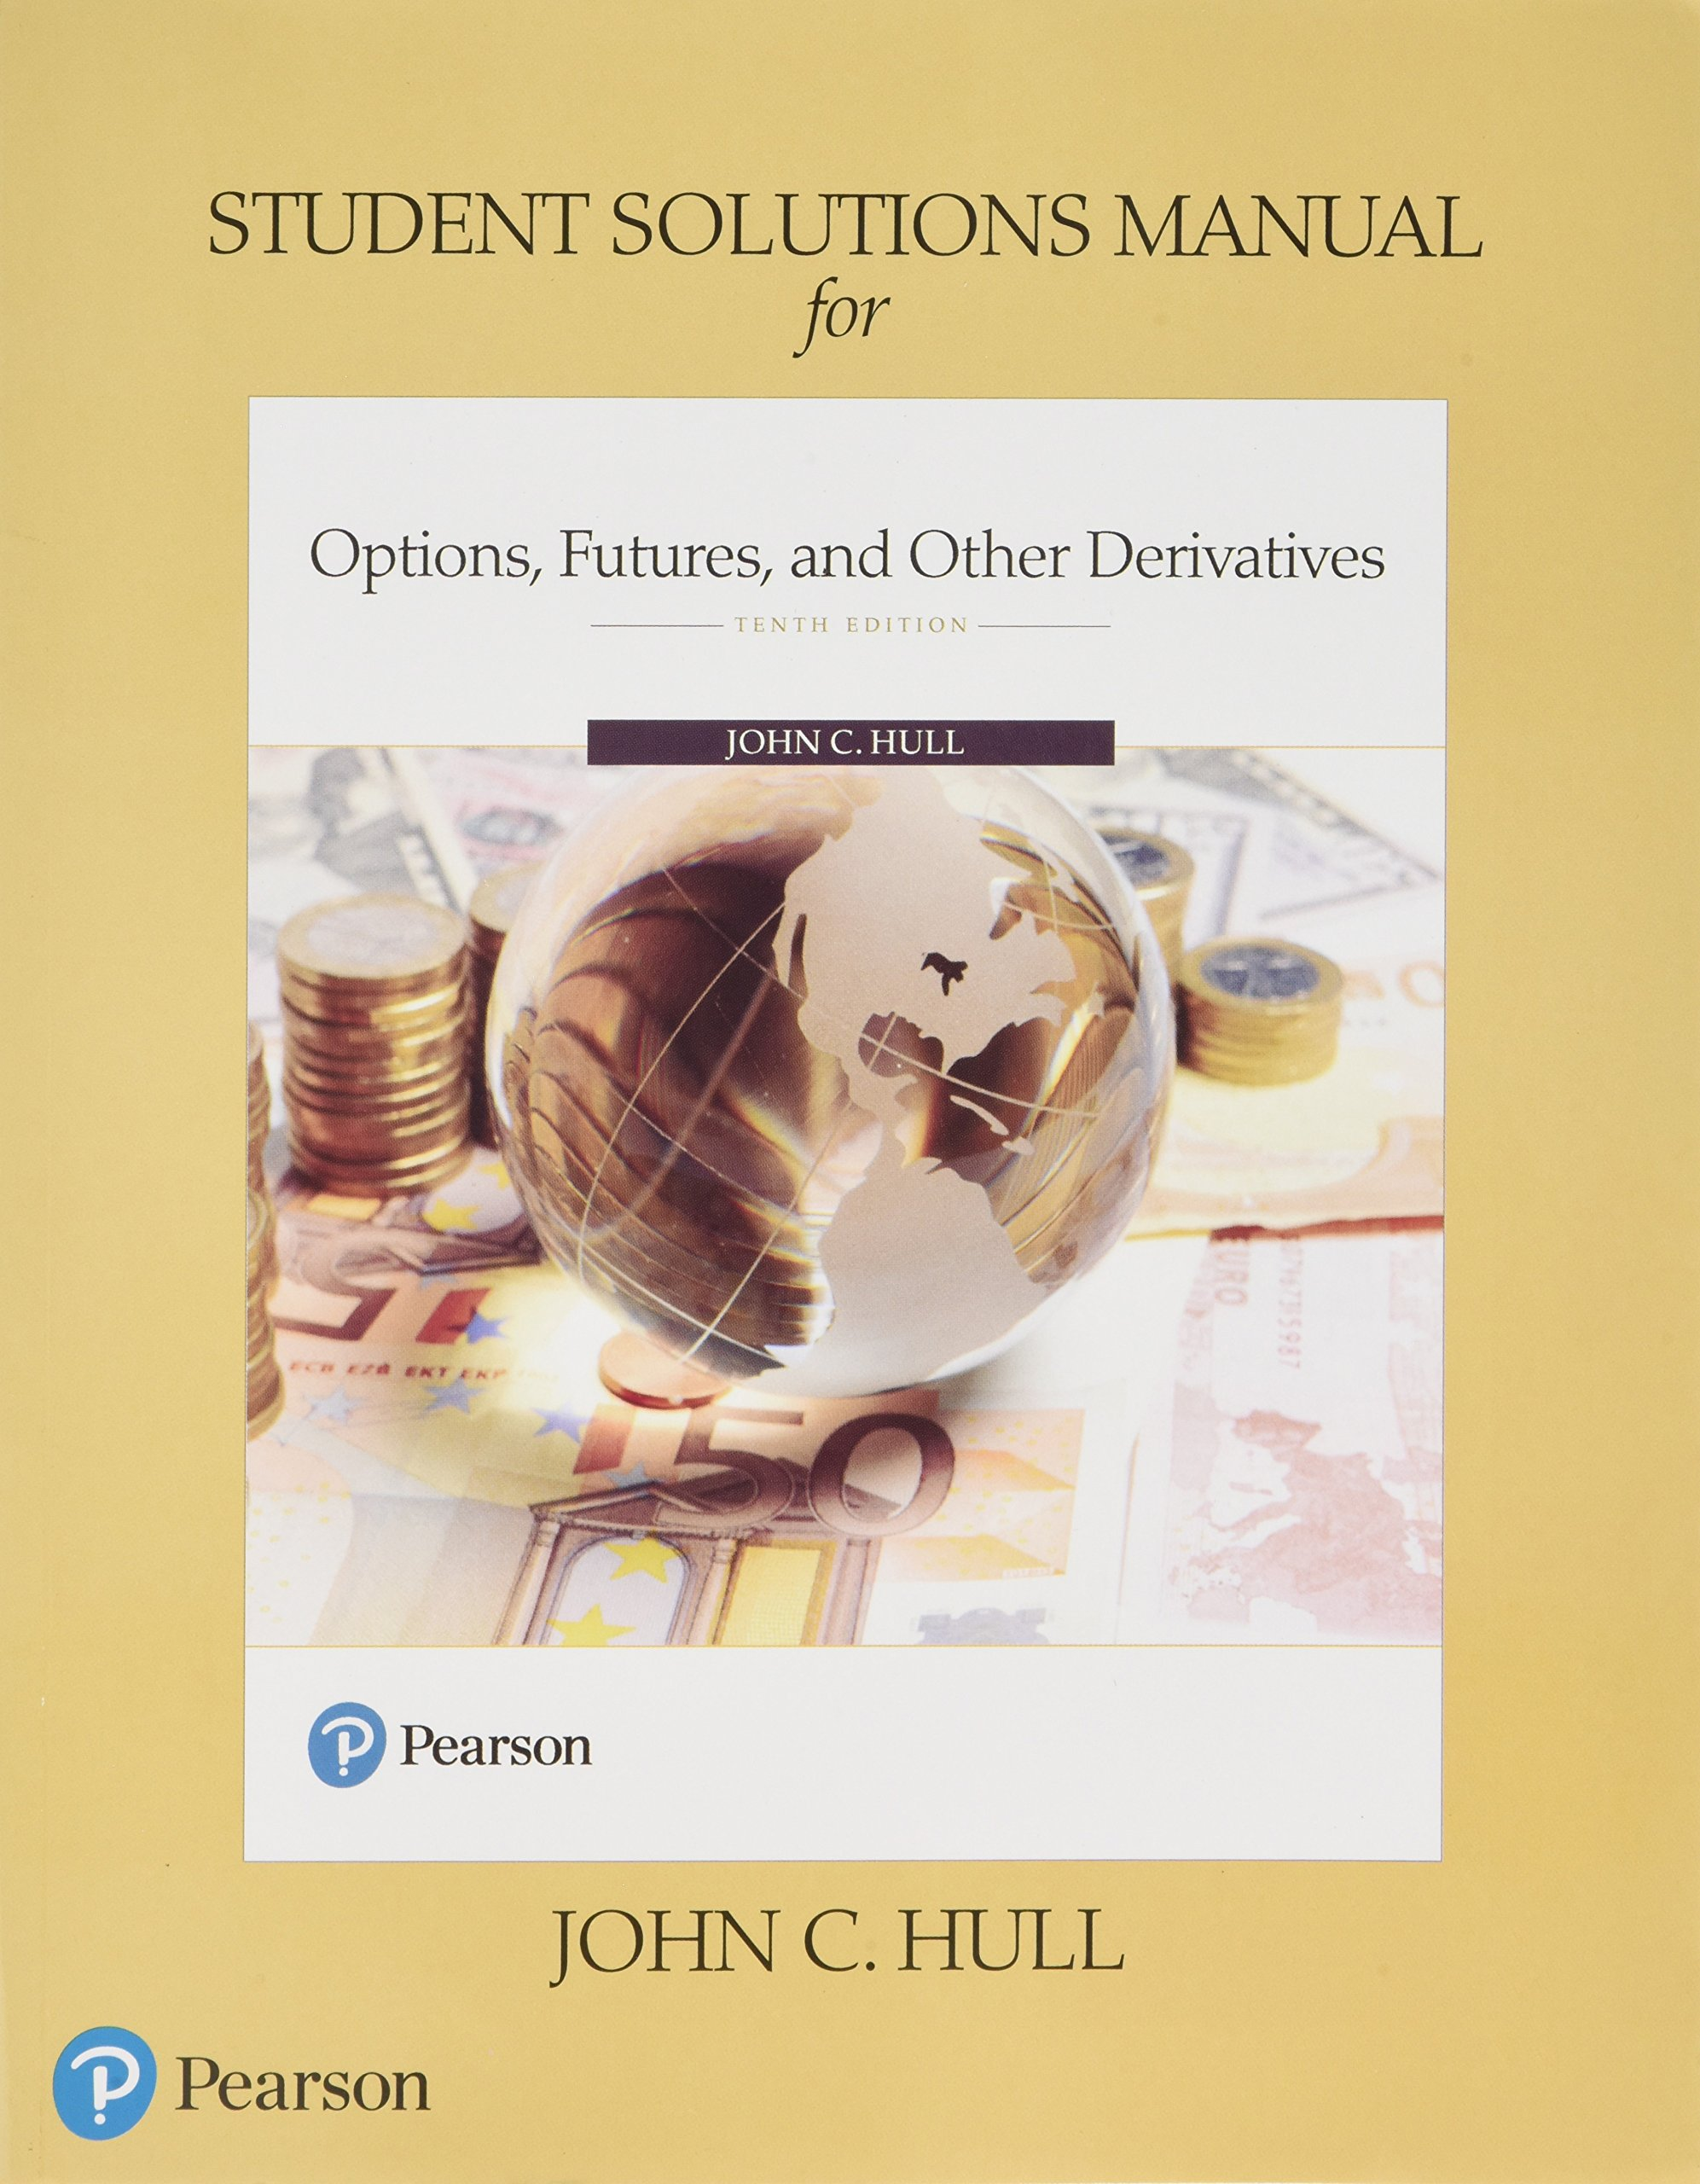 Student Solutions Manual for Options, Futures, and Other Derivatives:  Amazon.co.uk: John C. Hull: 9780134629995: Books